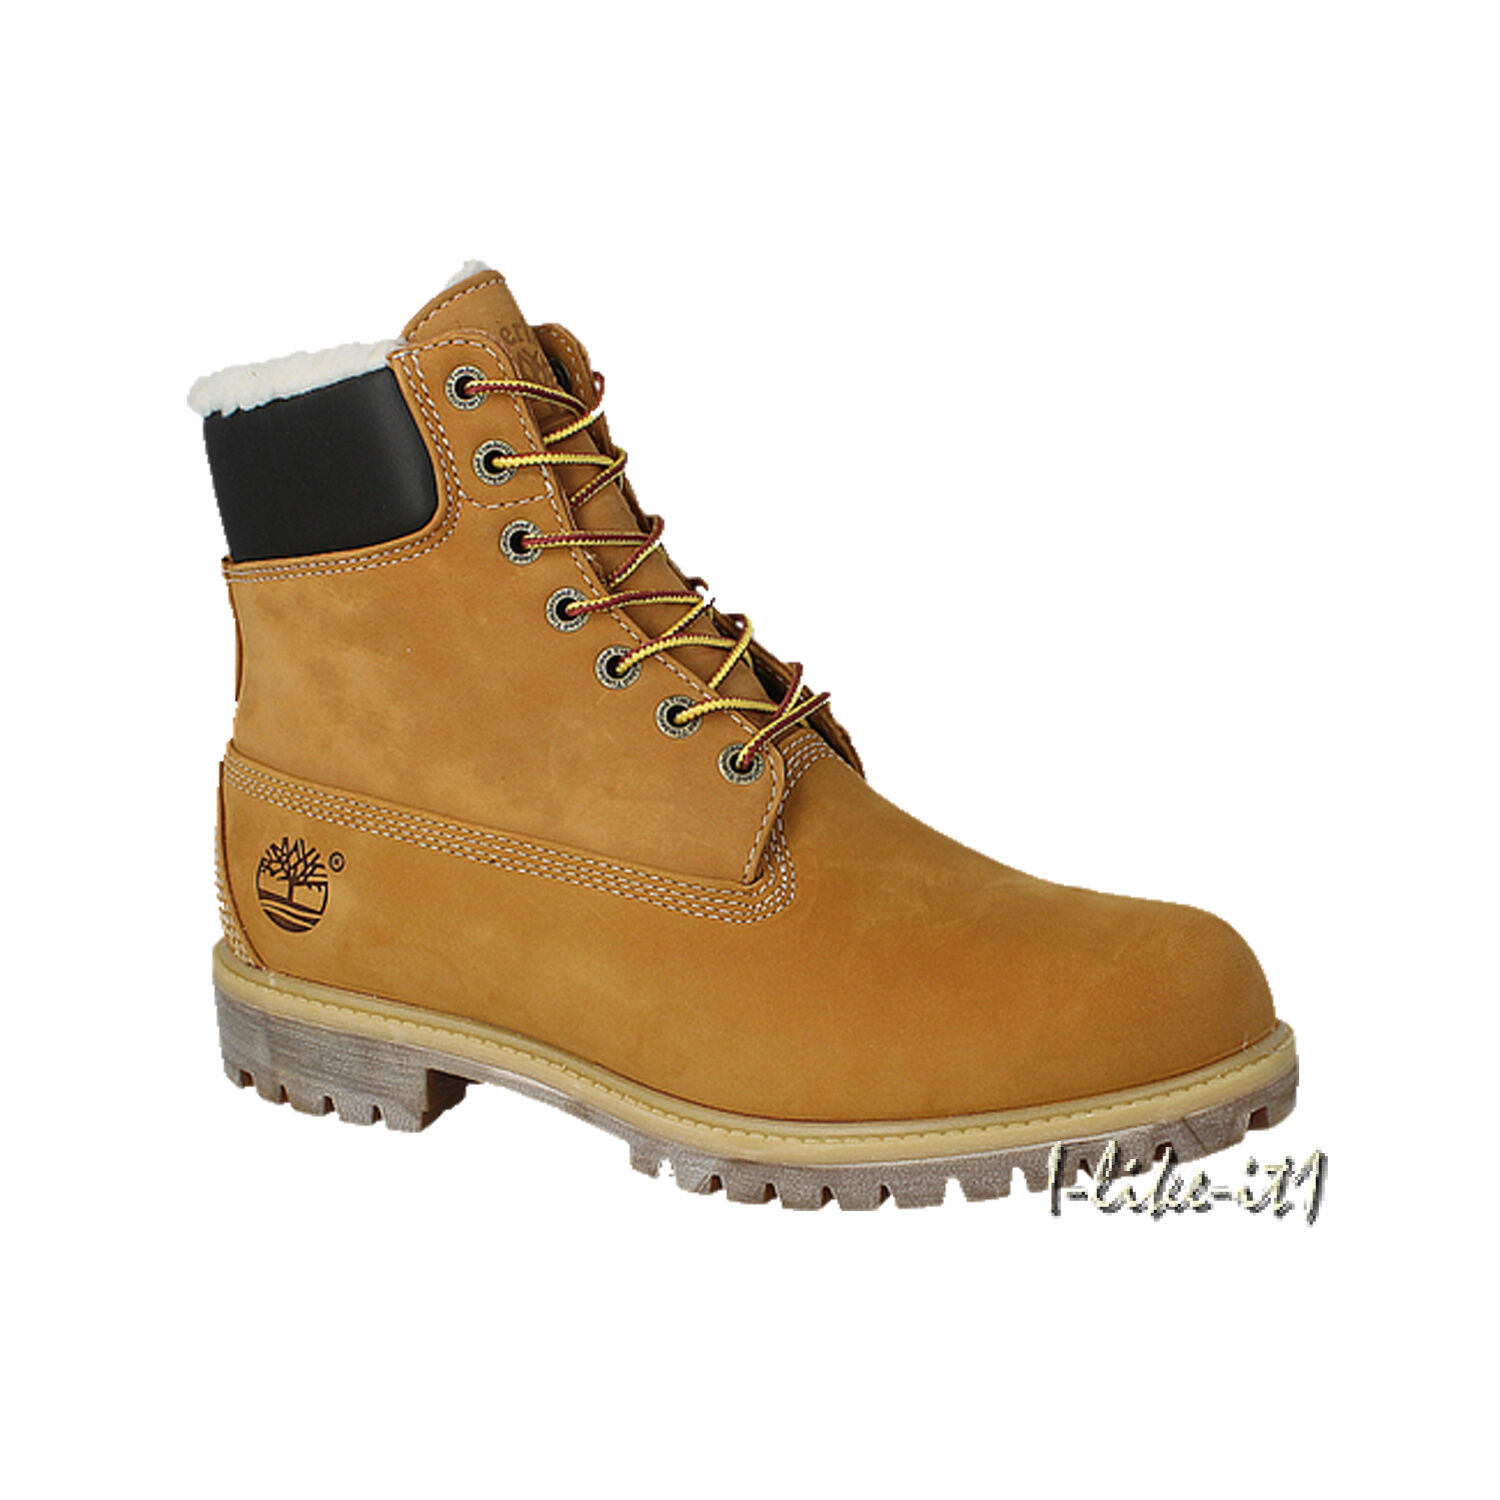 Timberland HERREN A13GA HERITAGE 6 IN WARM LINED LINED LINED TEDDY FLEECE Stiefel Wheat WATERP    baa370